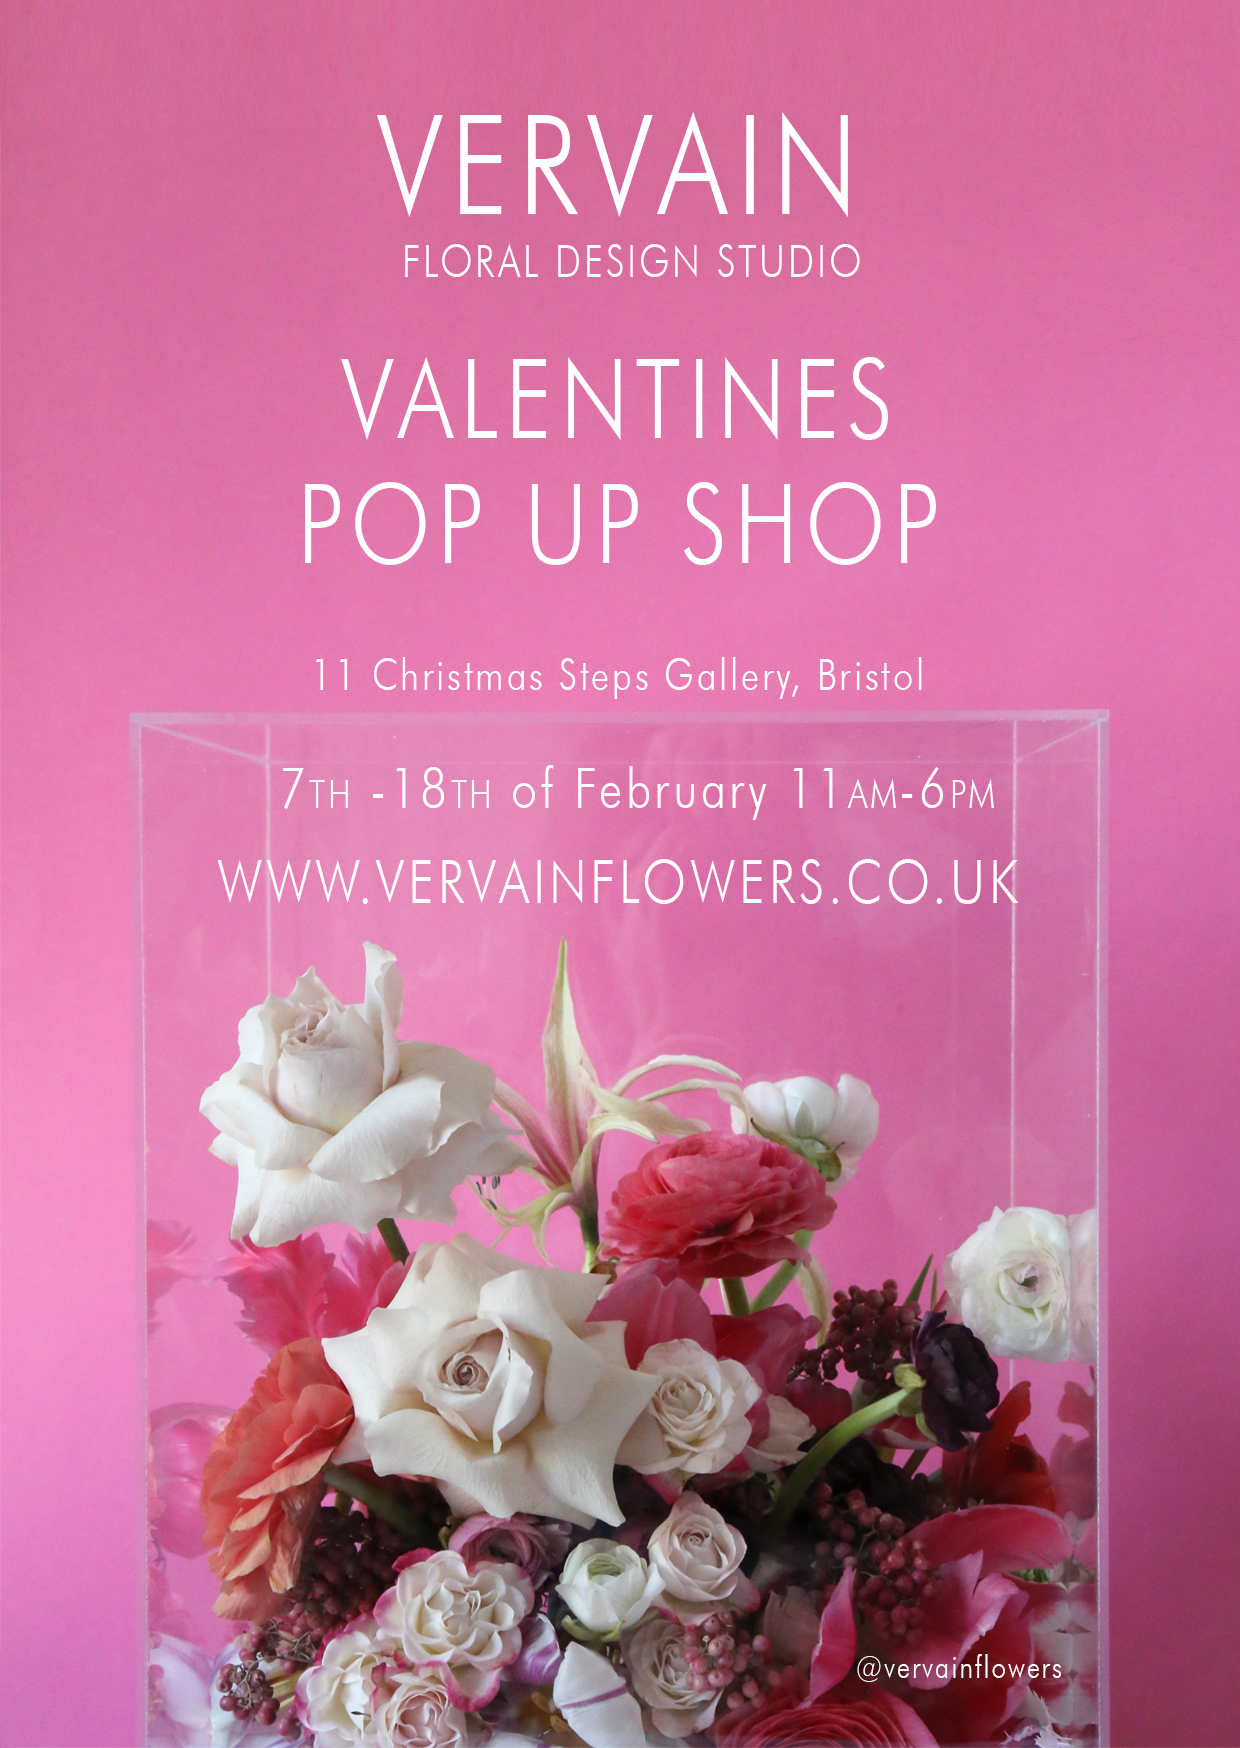 vervain pop up shop bristol 2017